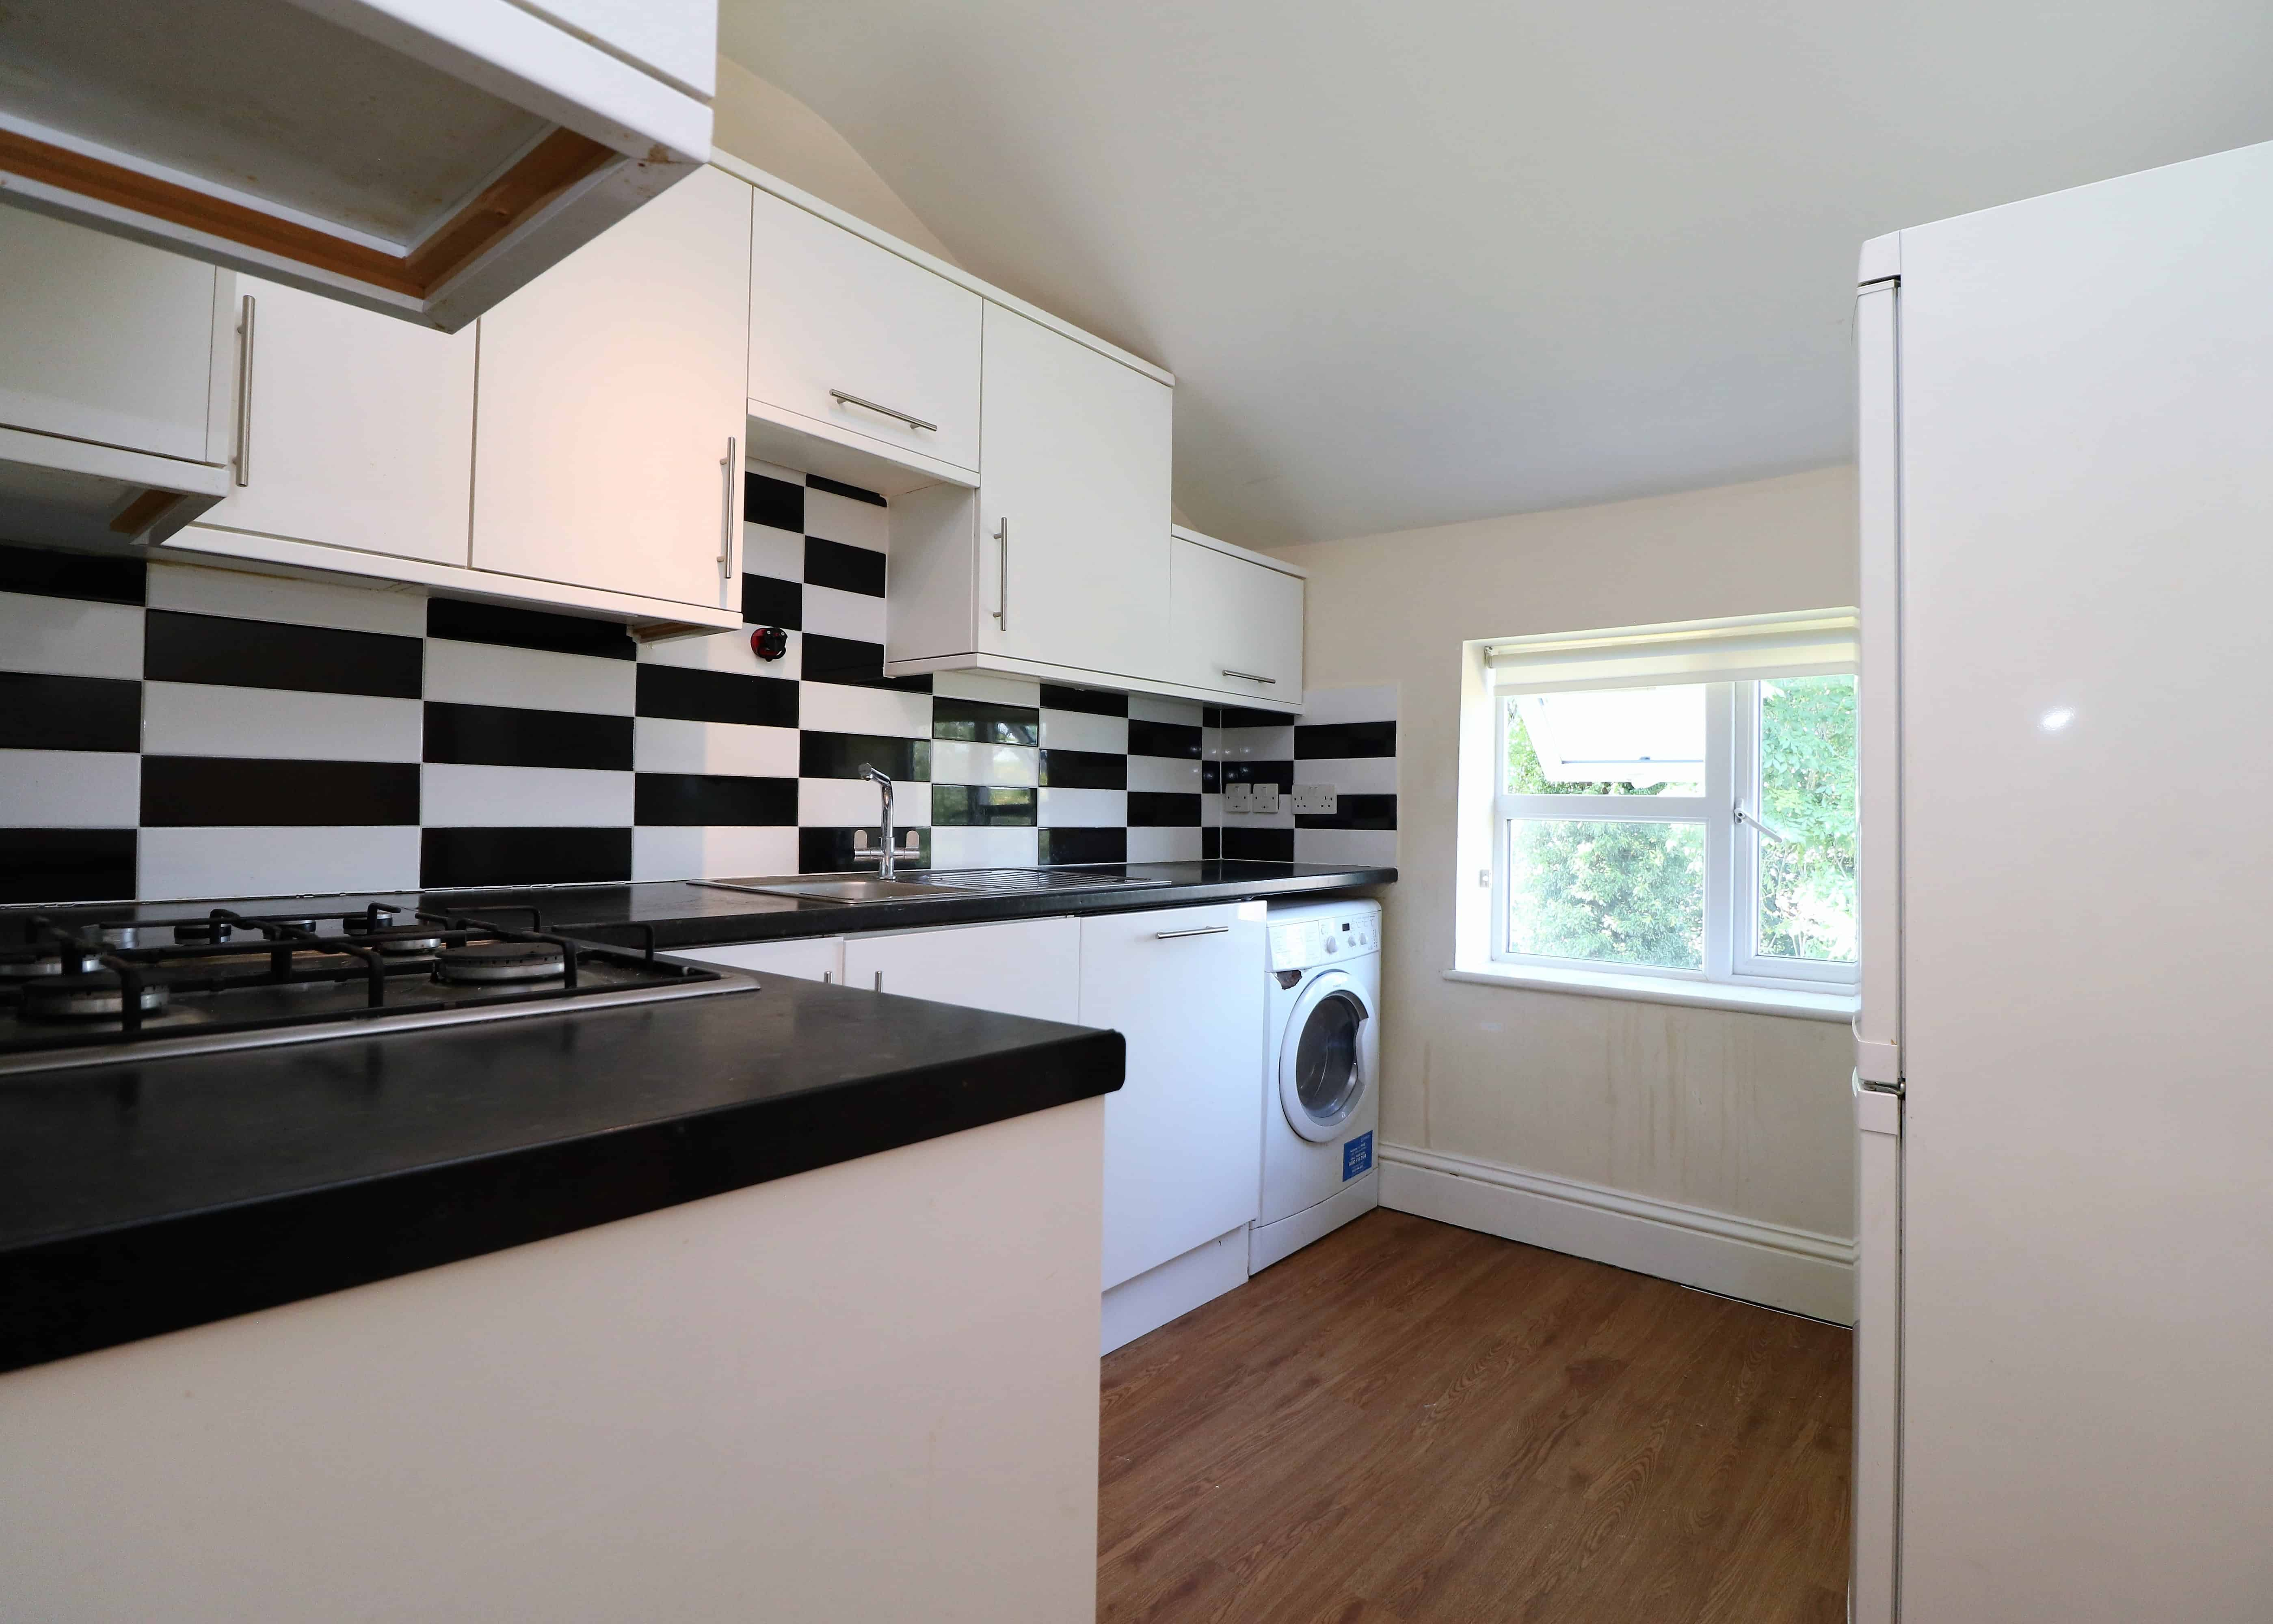 First floor one double bedroom flat in NW7 and much sought after location of Poets Corner of Mill Hill.